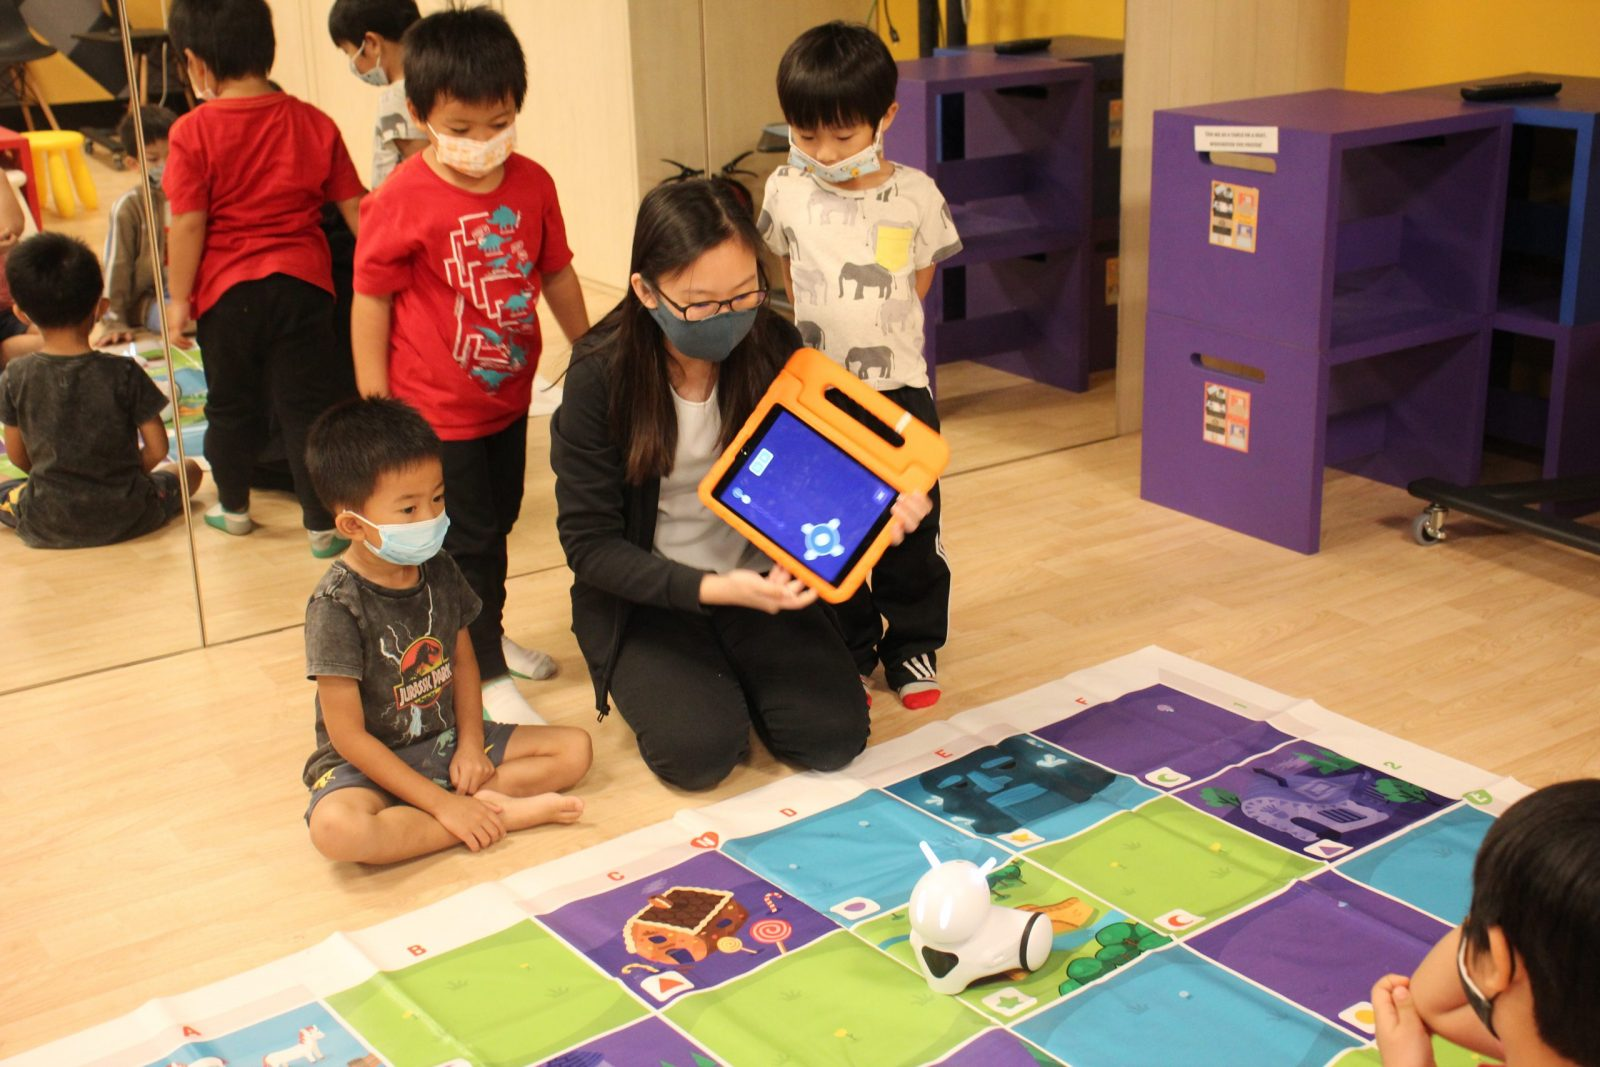 Educator holding an iPad with junior coders surrounding her and in front of Photon robot